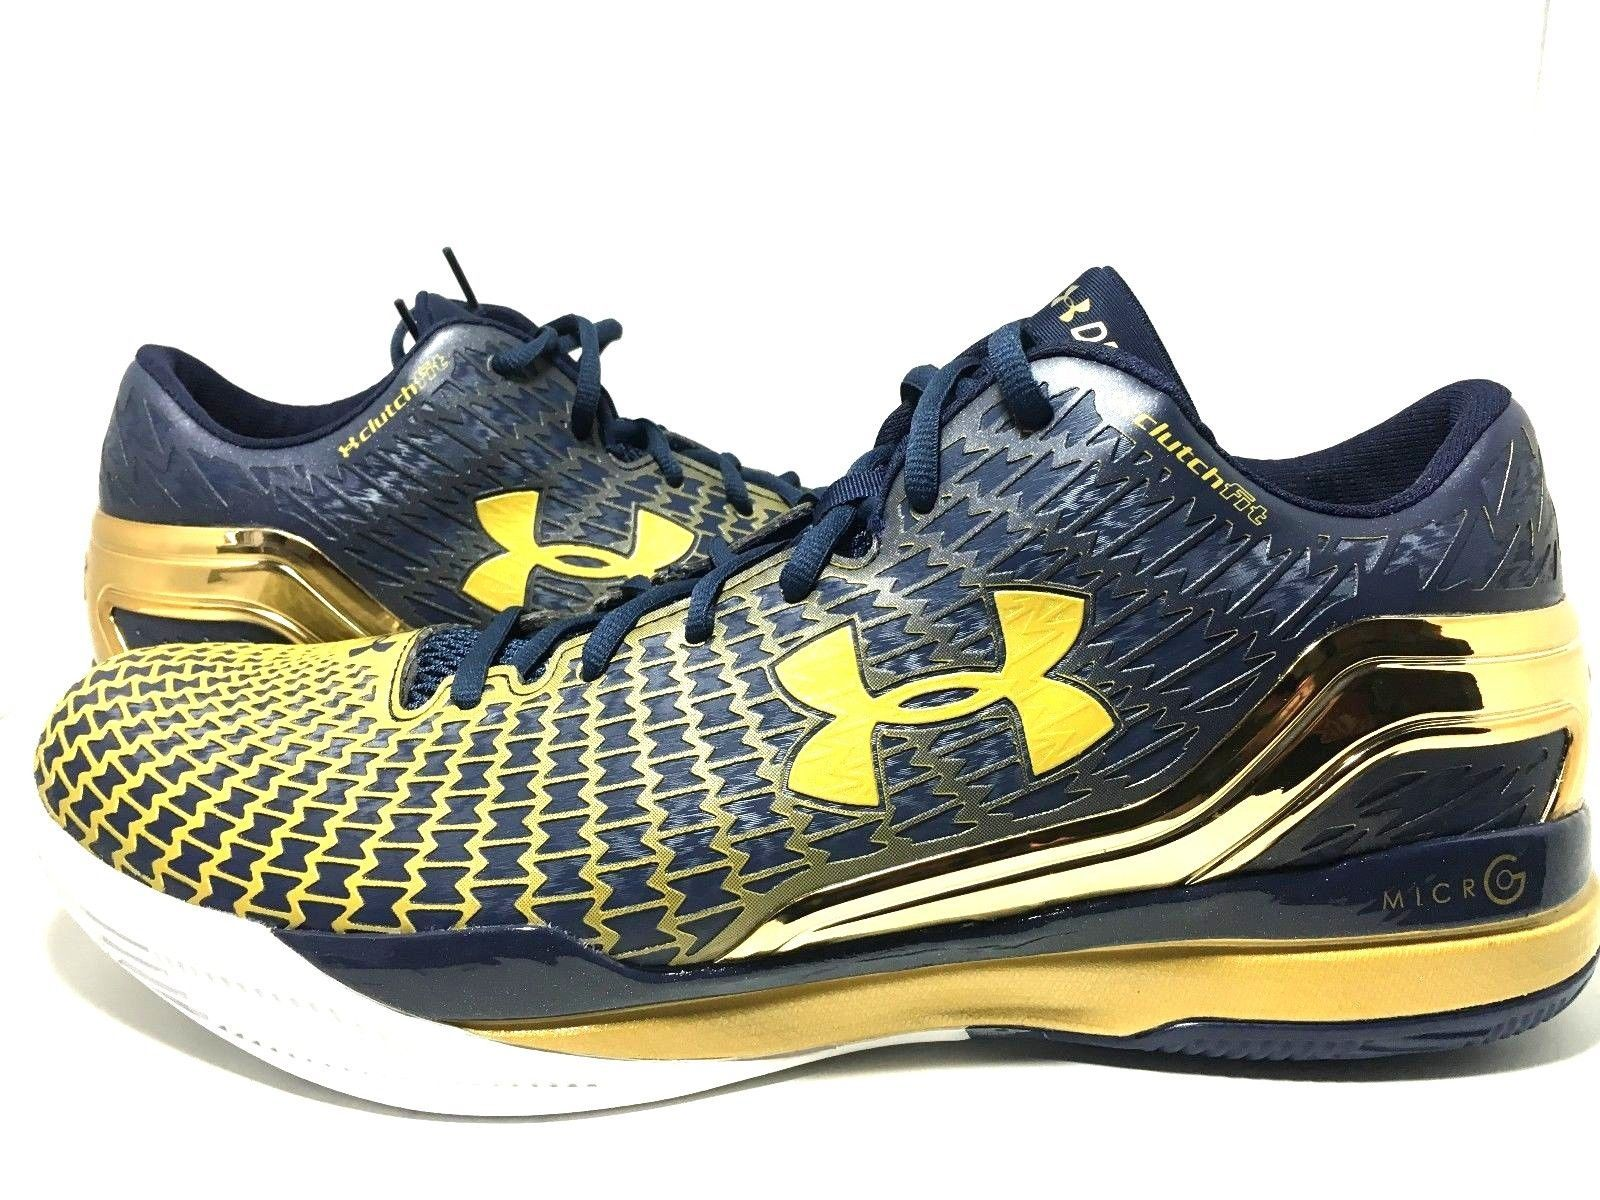 Under Armour Clutchfit Drive Stephen Curry Notre Dame Basketball Men's 15